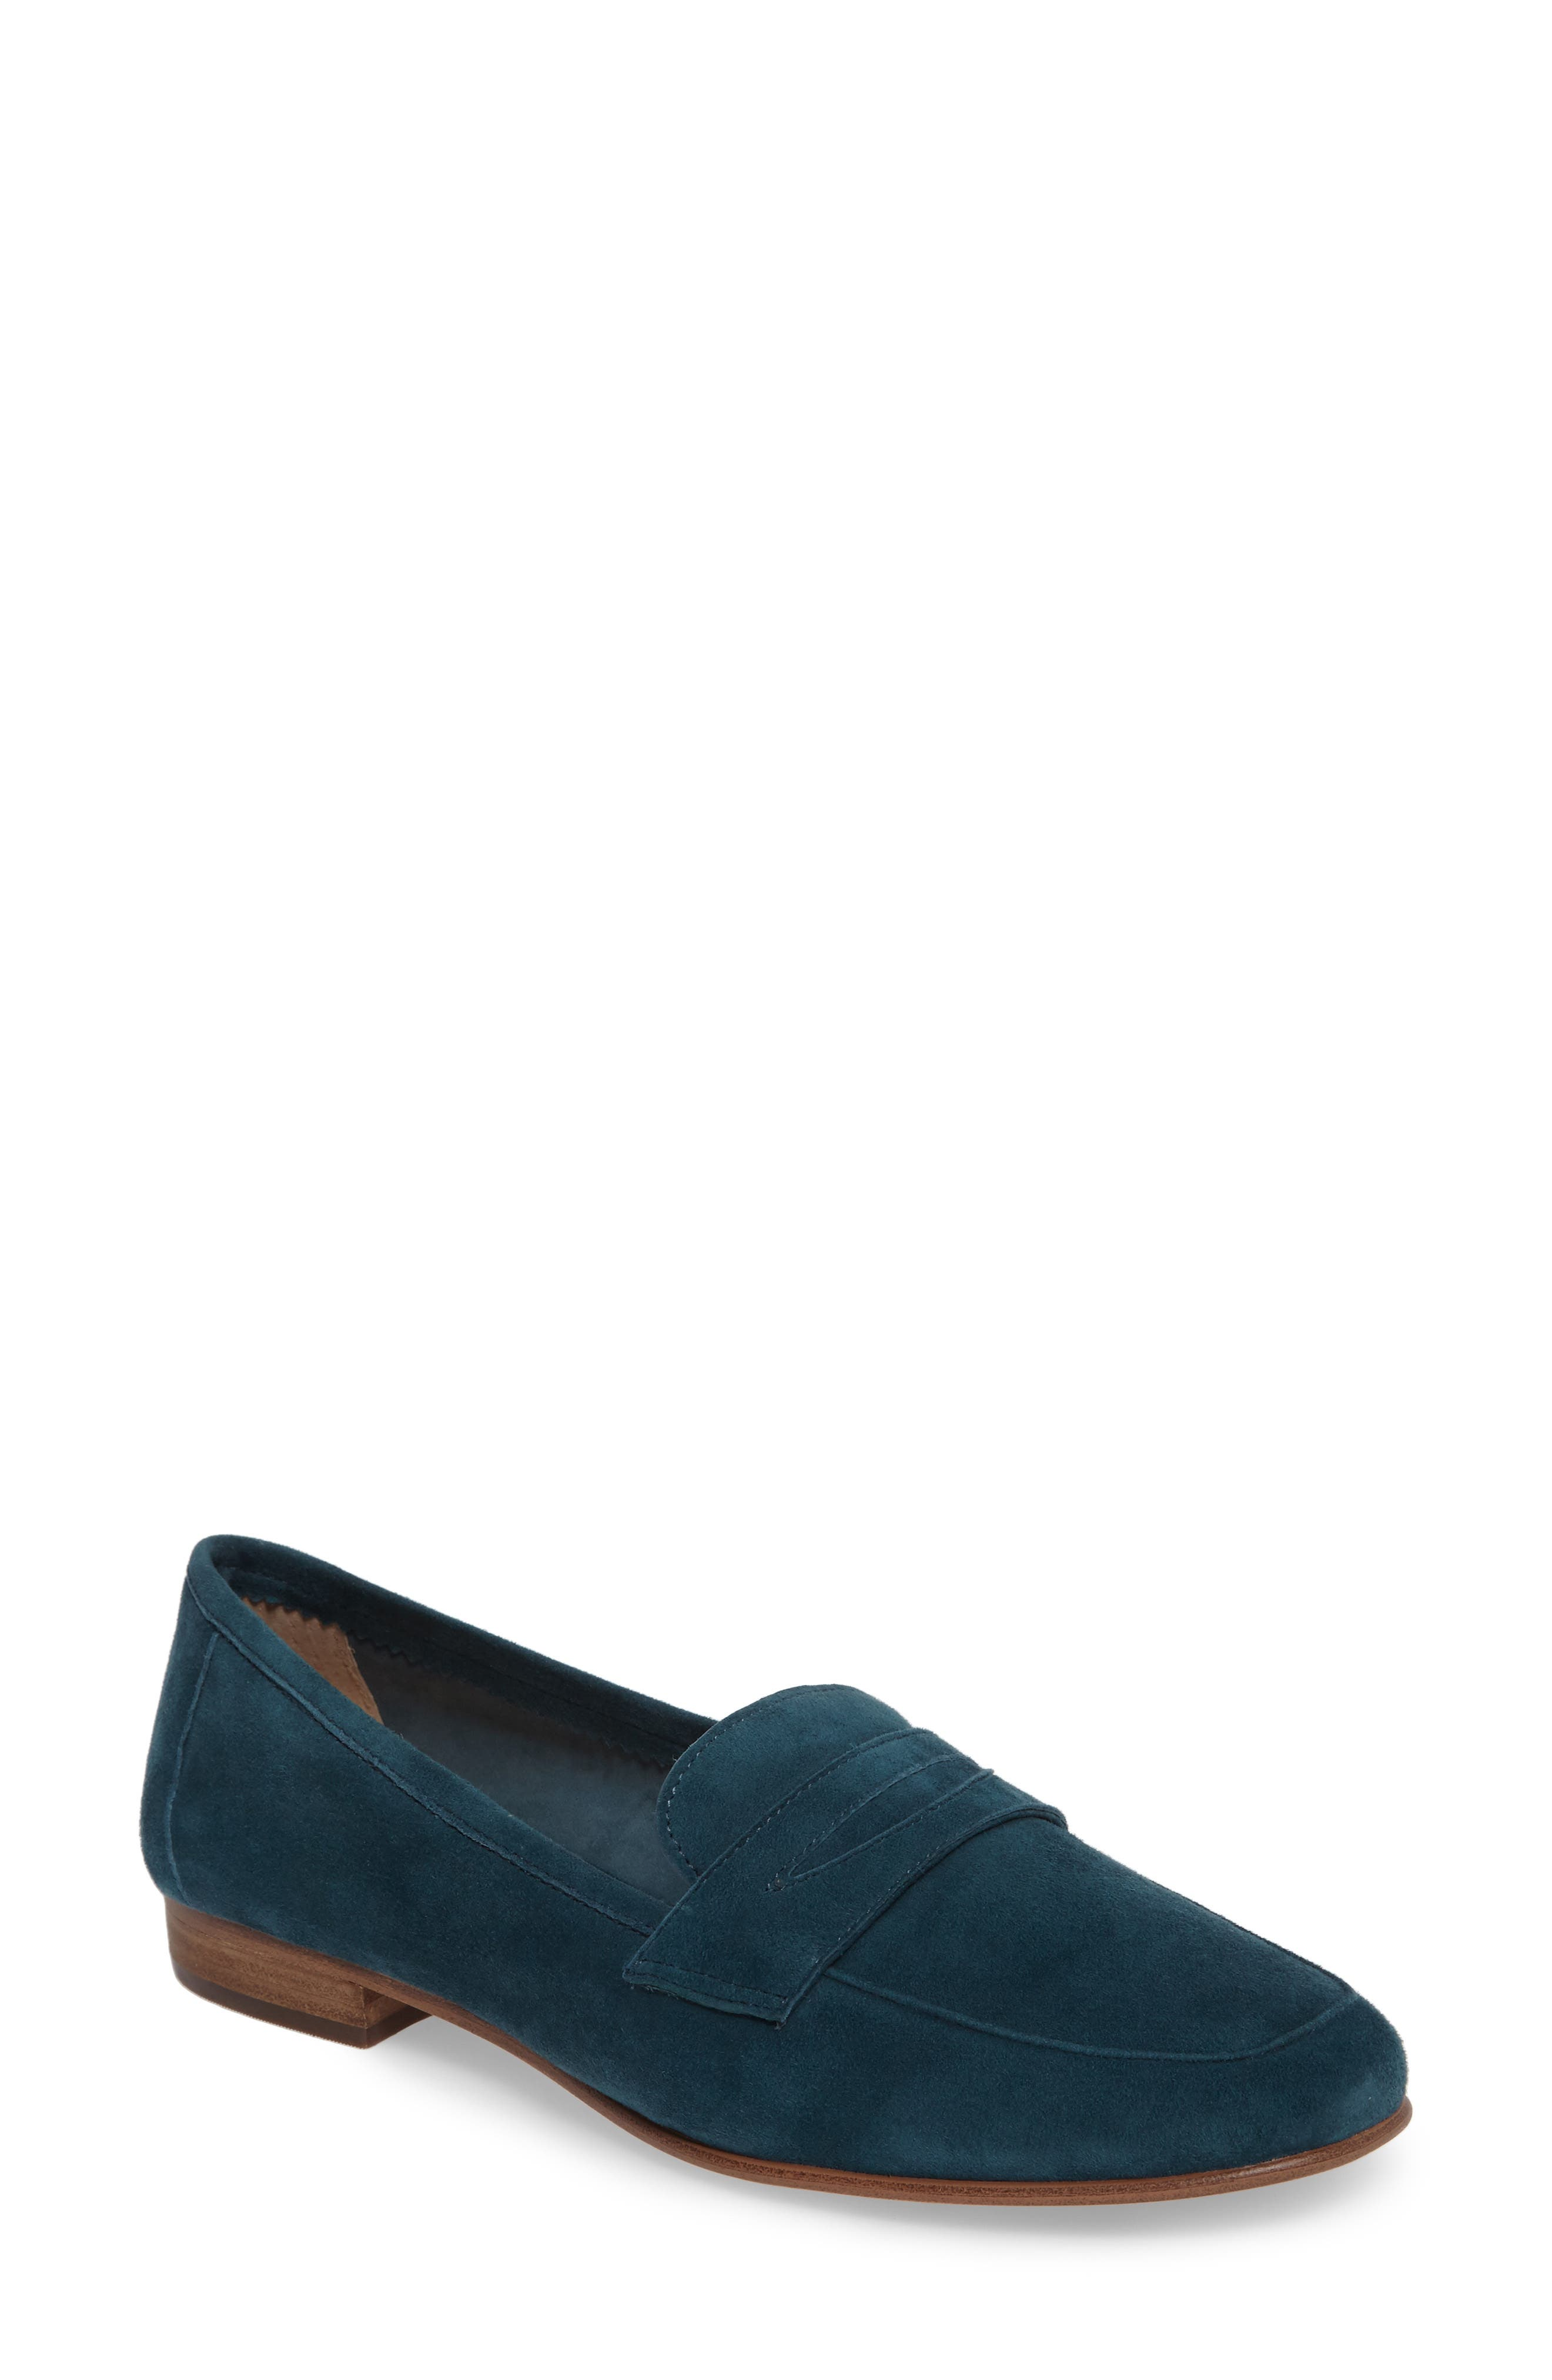 Elroy Penny Loafer,                         Main,                         color, BISCAY BAY SUEDE